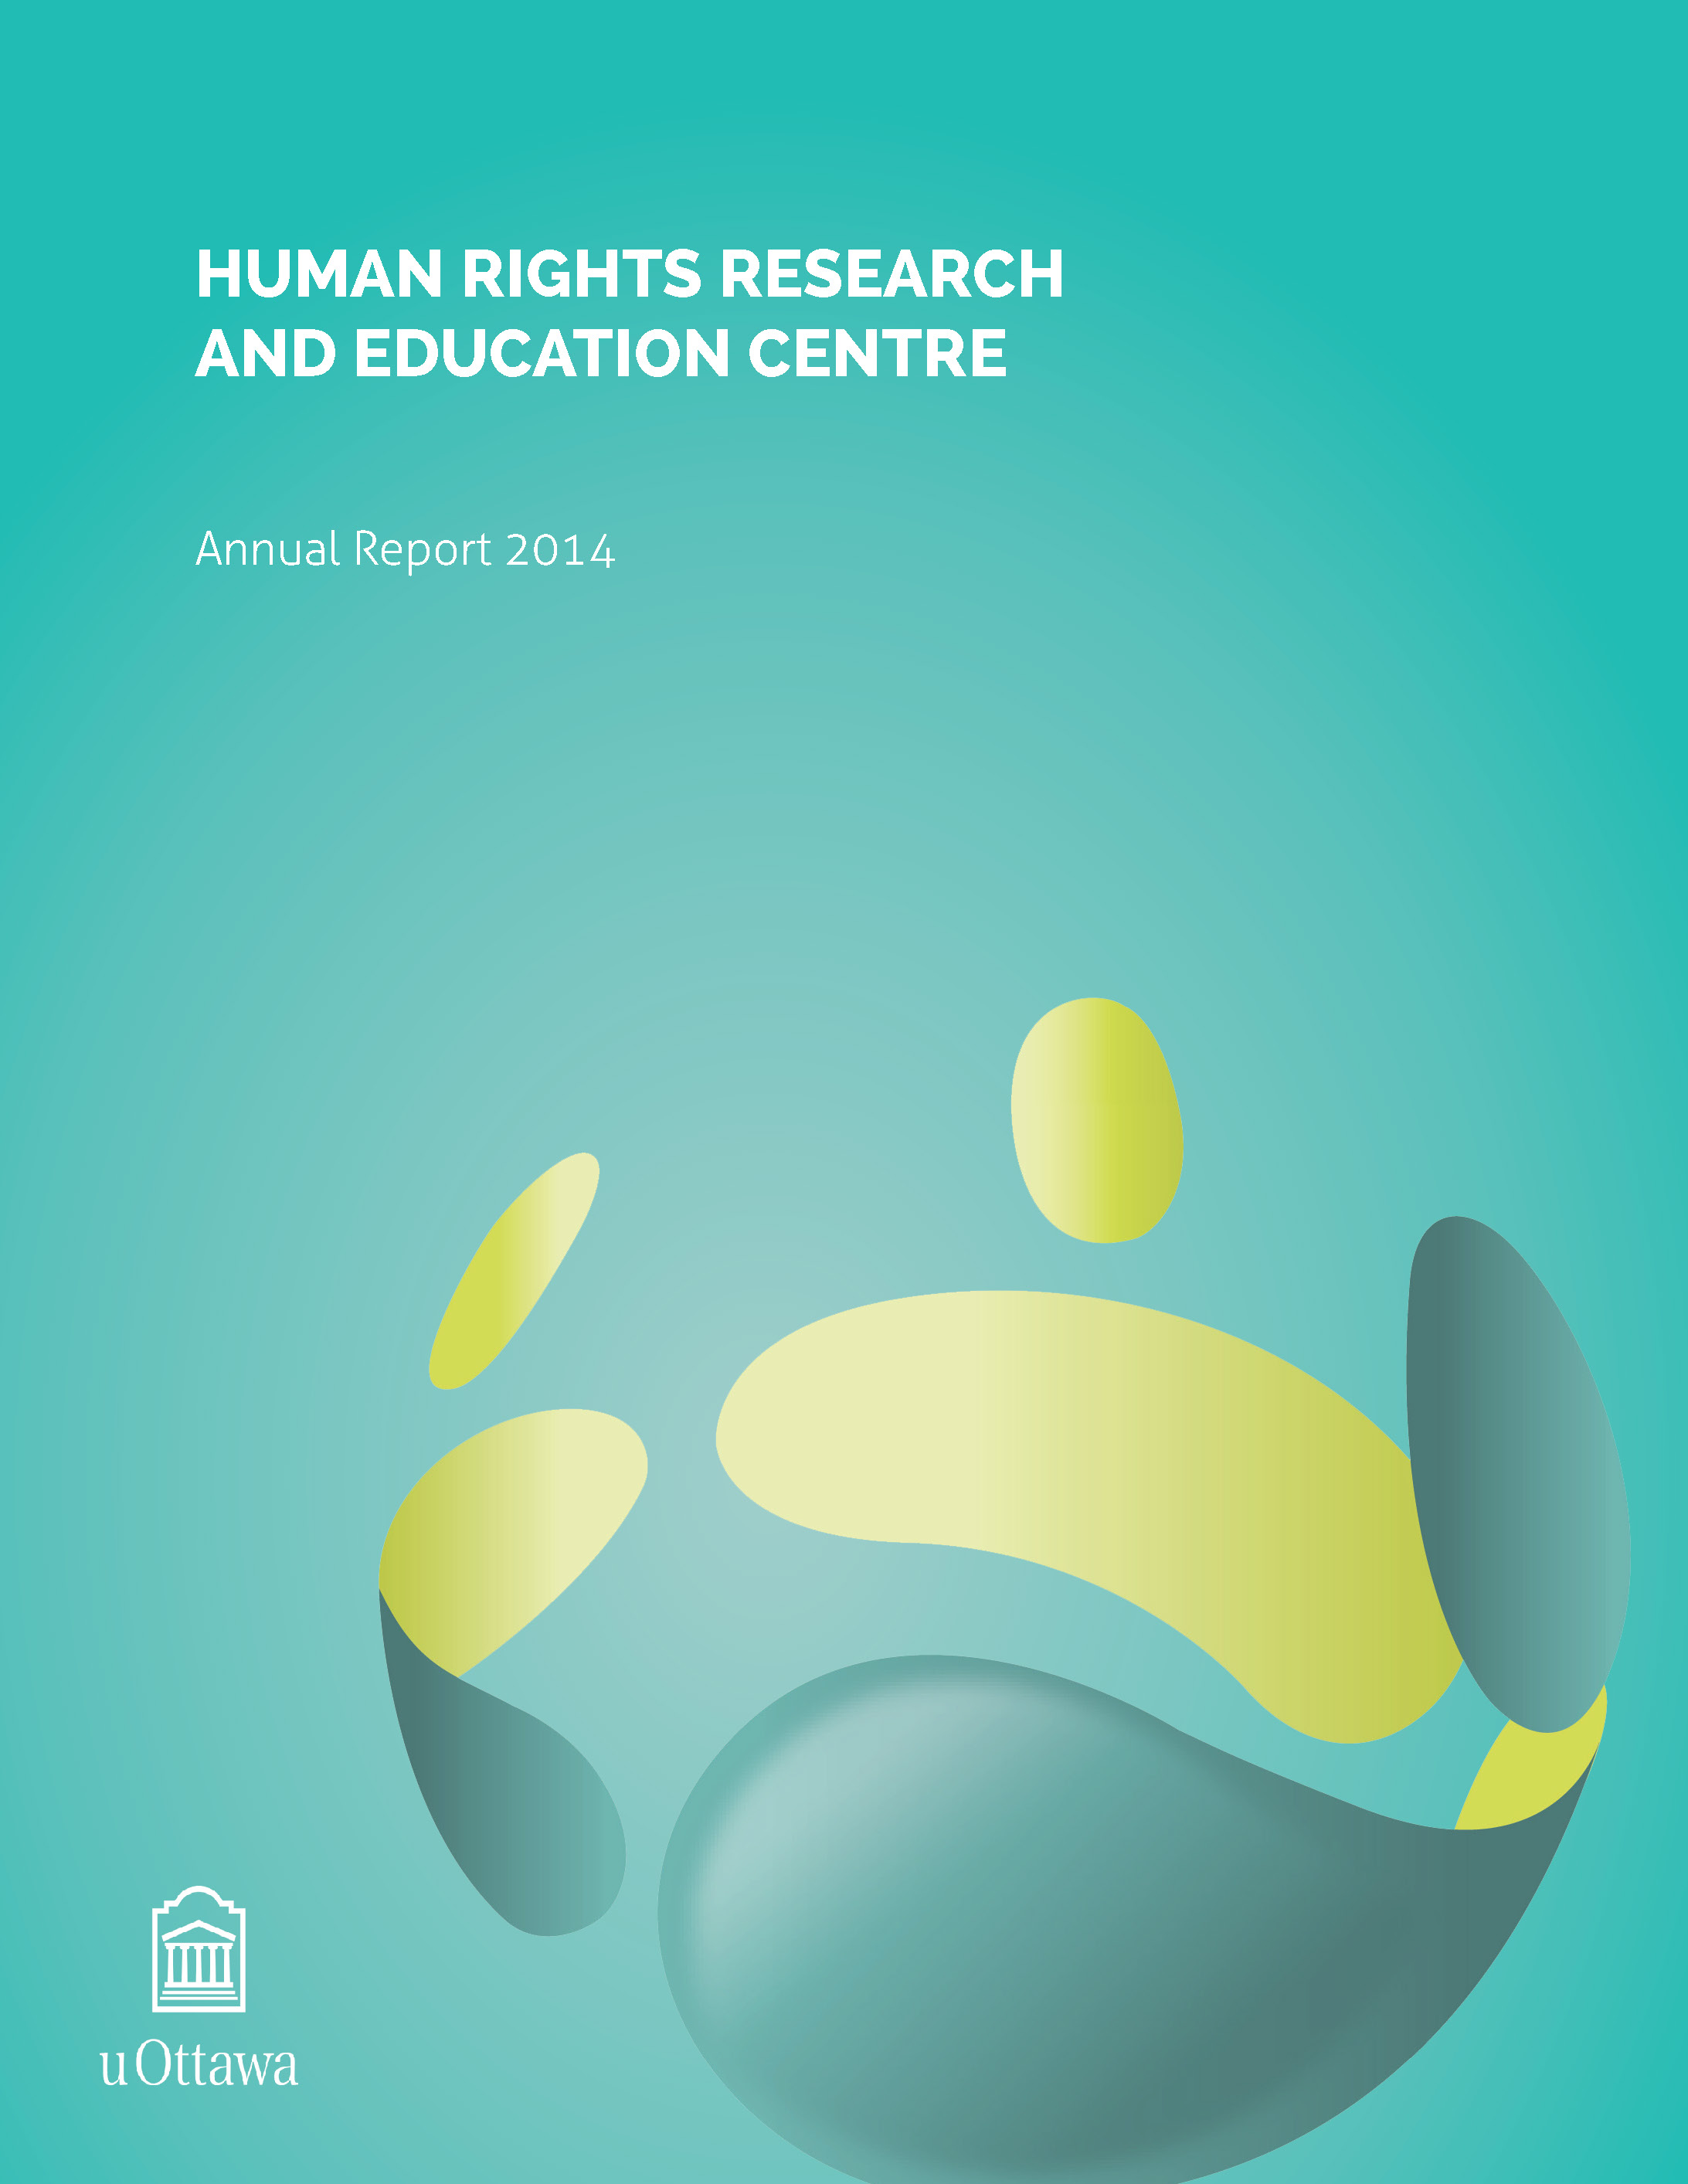 HRREC Annual Report 2014